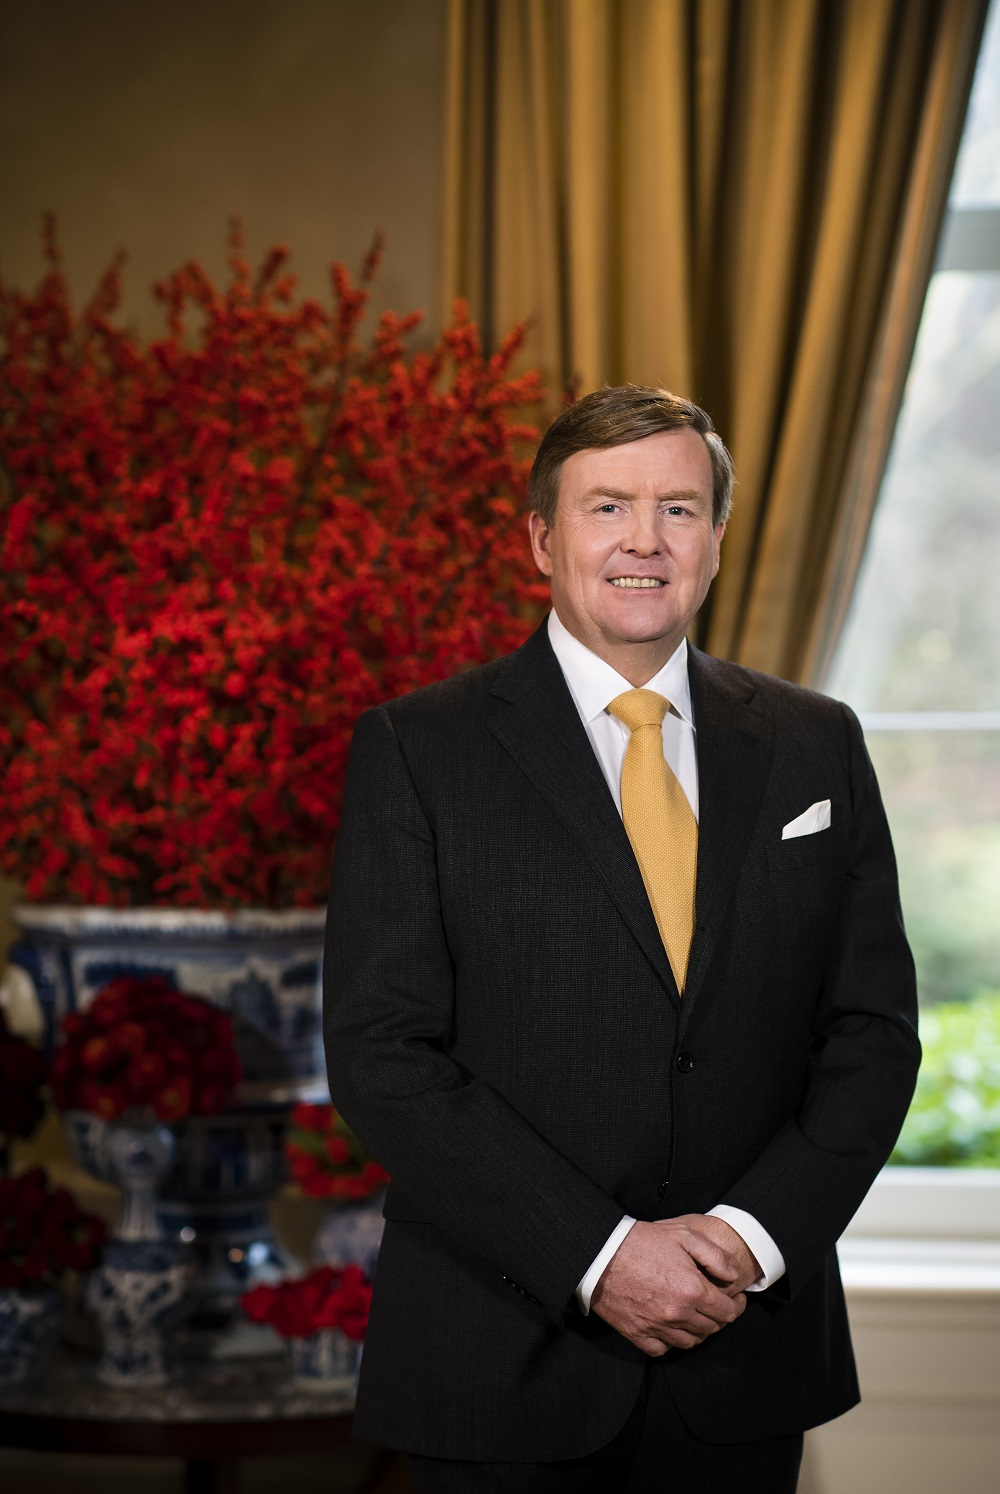 King Willem Alexander - Copyright RVD - Photo Frank van Beek - 20171225